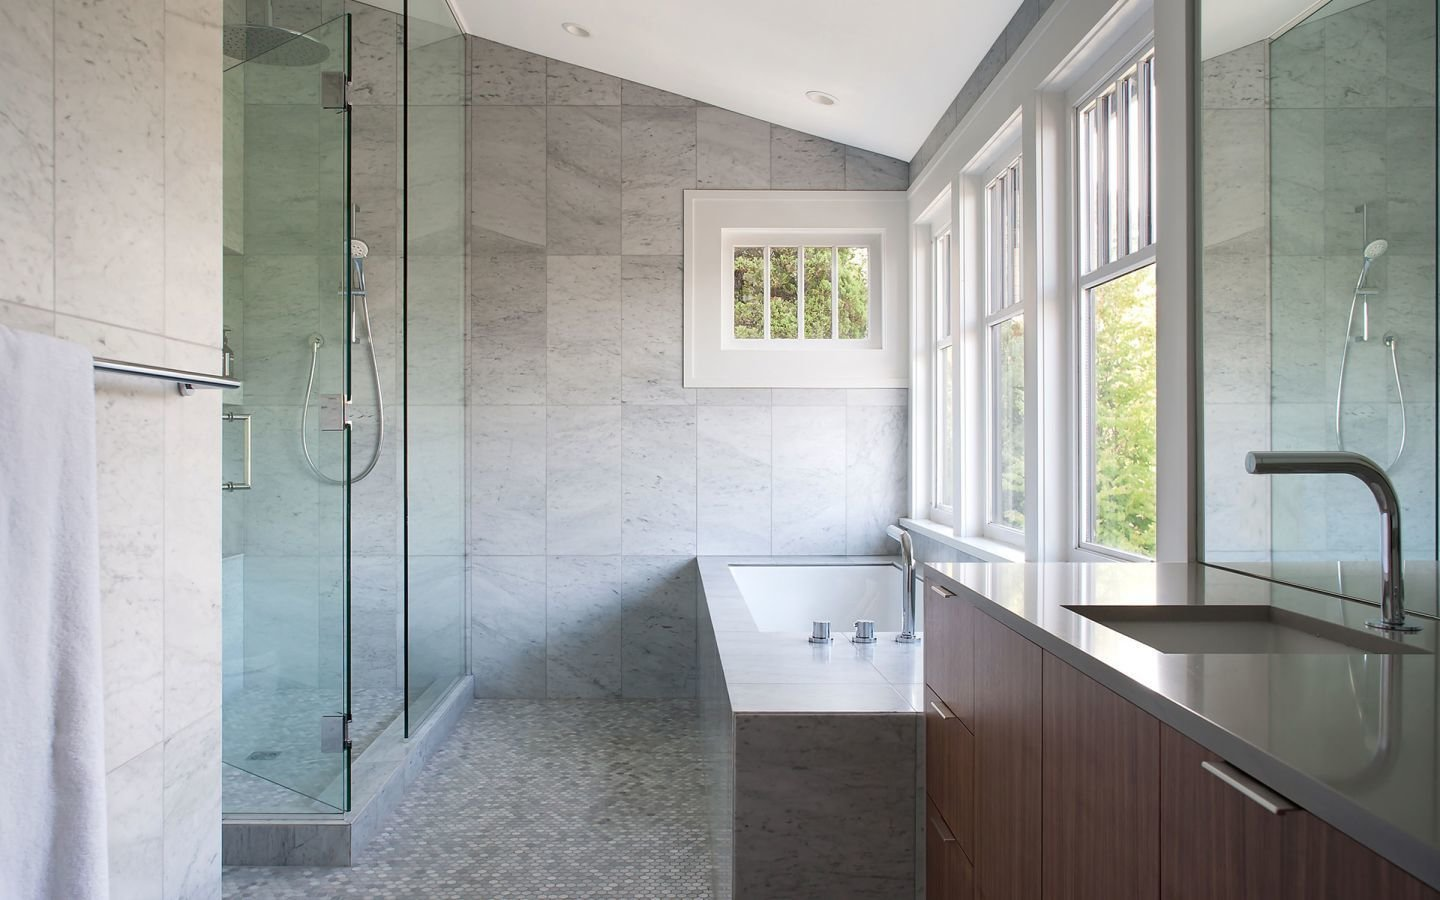 Bath Room, Engineered Quartz Counter, Marble Floor, Undermount Sink, Soaking Tub, Drop In Tub, Enclosed Shower, and Marble Wall Interior walls were repainted and flooring was repaired, but the master bathroom received the most attention in the existing house. The renovation included marble mosaic floor tiles, fixtures by Blu Bathworks, and Silestone countertops.  Photo 7 of 8 in A Vancouver Renovation Transforms a Backyard Into a Giant Living Room from A Vancouver Renovation Transforms a Backyard into a Giant Living Room